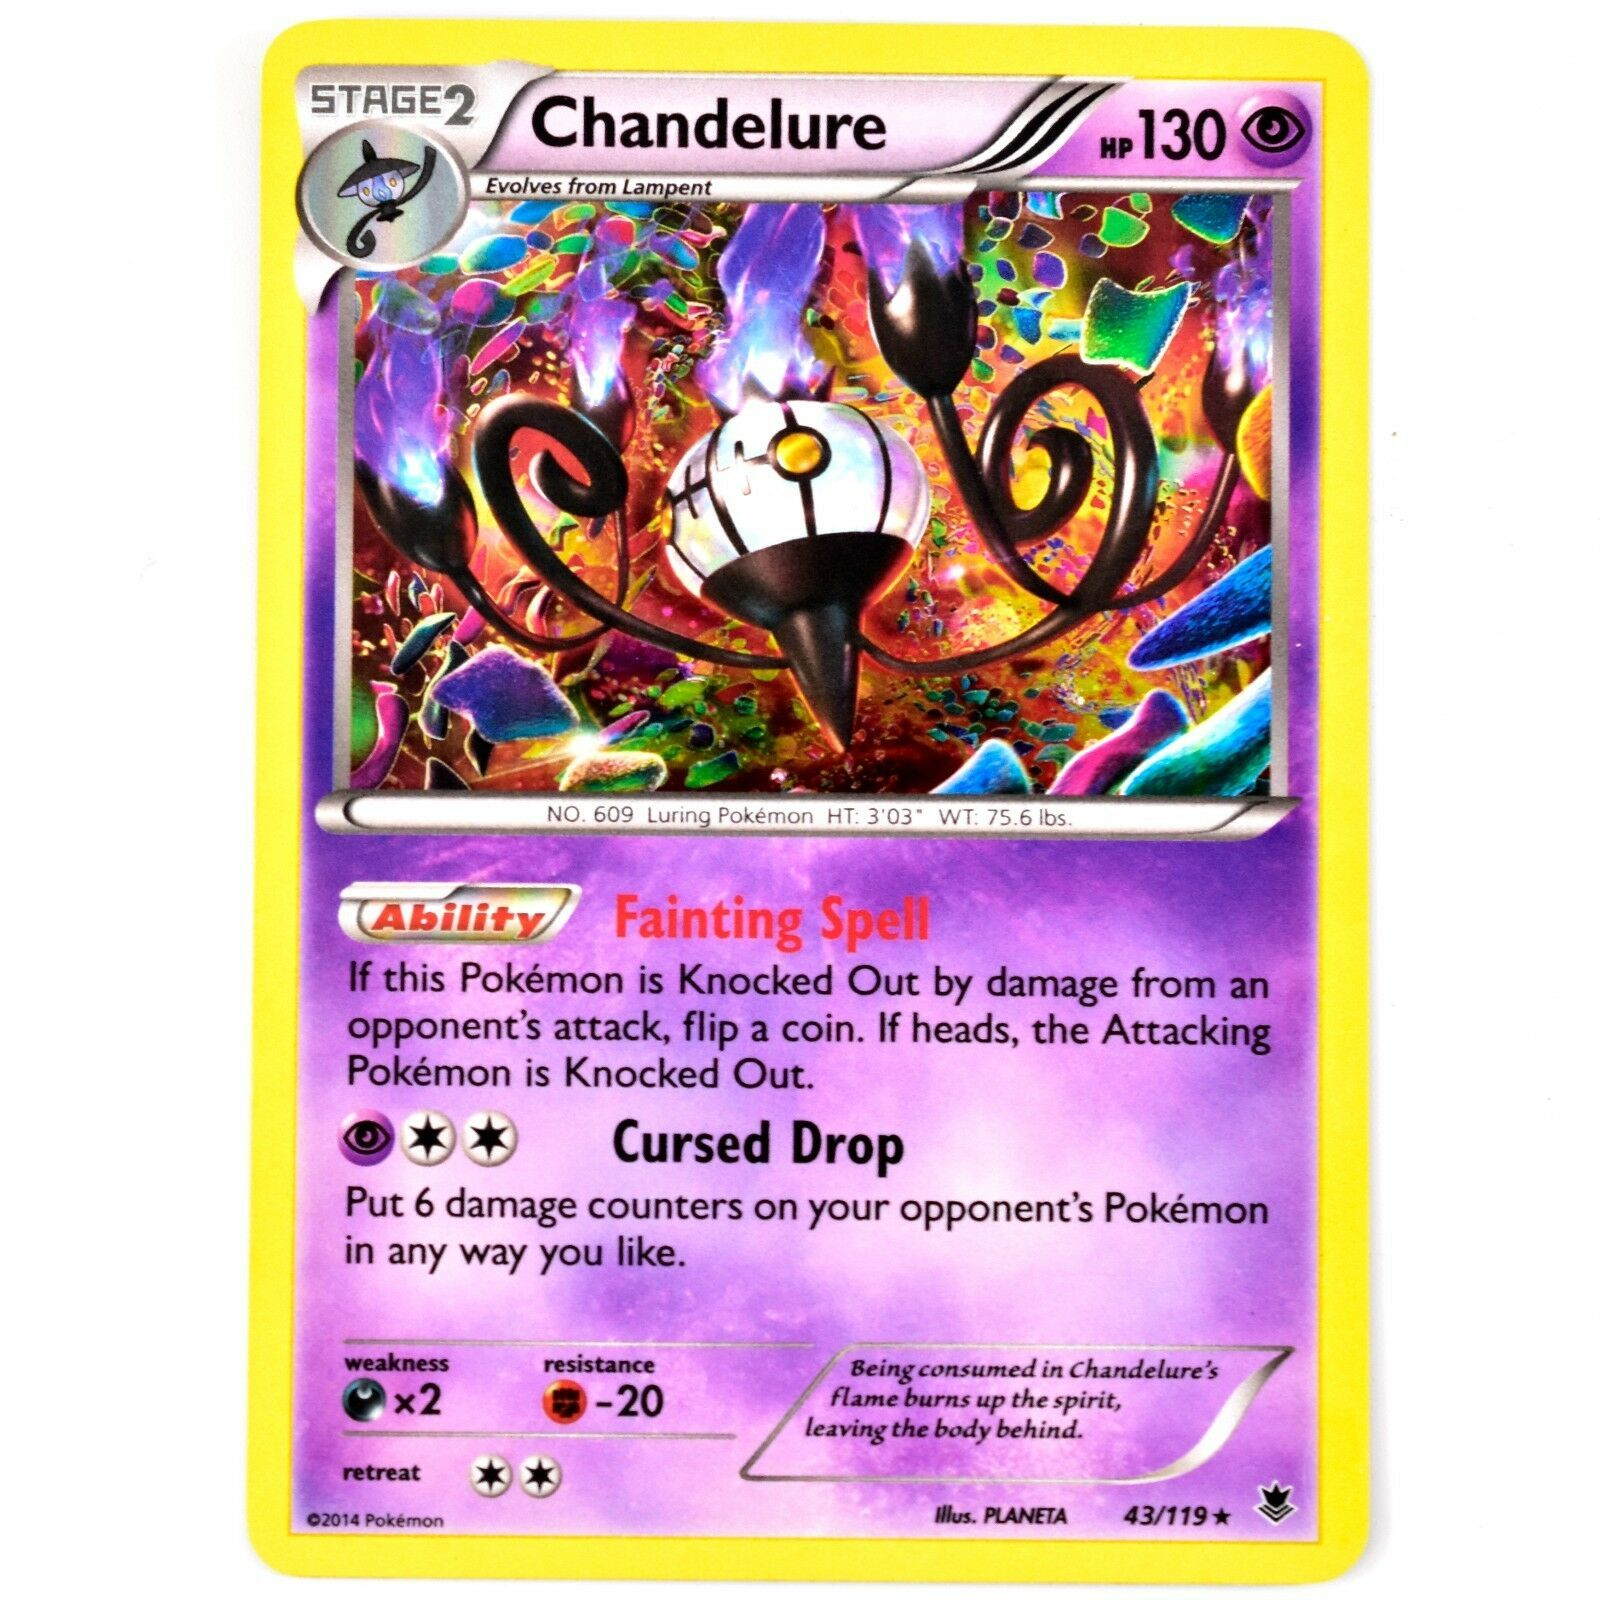 Pokemon TCG Chandelure 43/119 Phantom Forces Holo Shiny Card